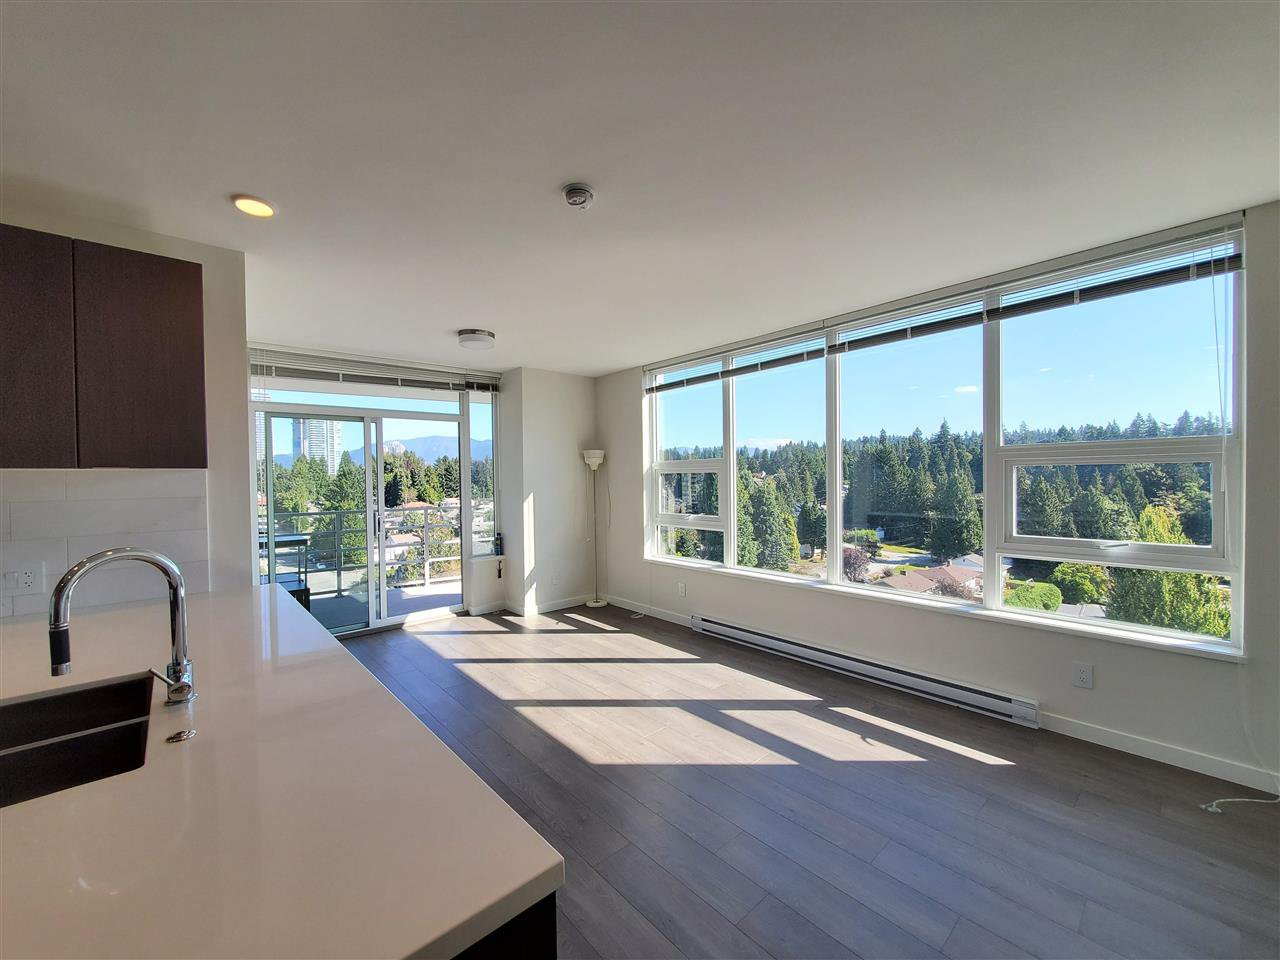 """Main Photo: 1104 530 WHITING Way in Coquitlam: Coquitlam West Condo for sale in """"Brookmere"""" : MLS®# R2494434"""